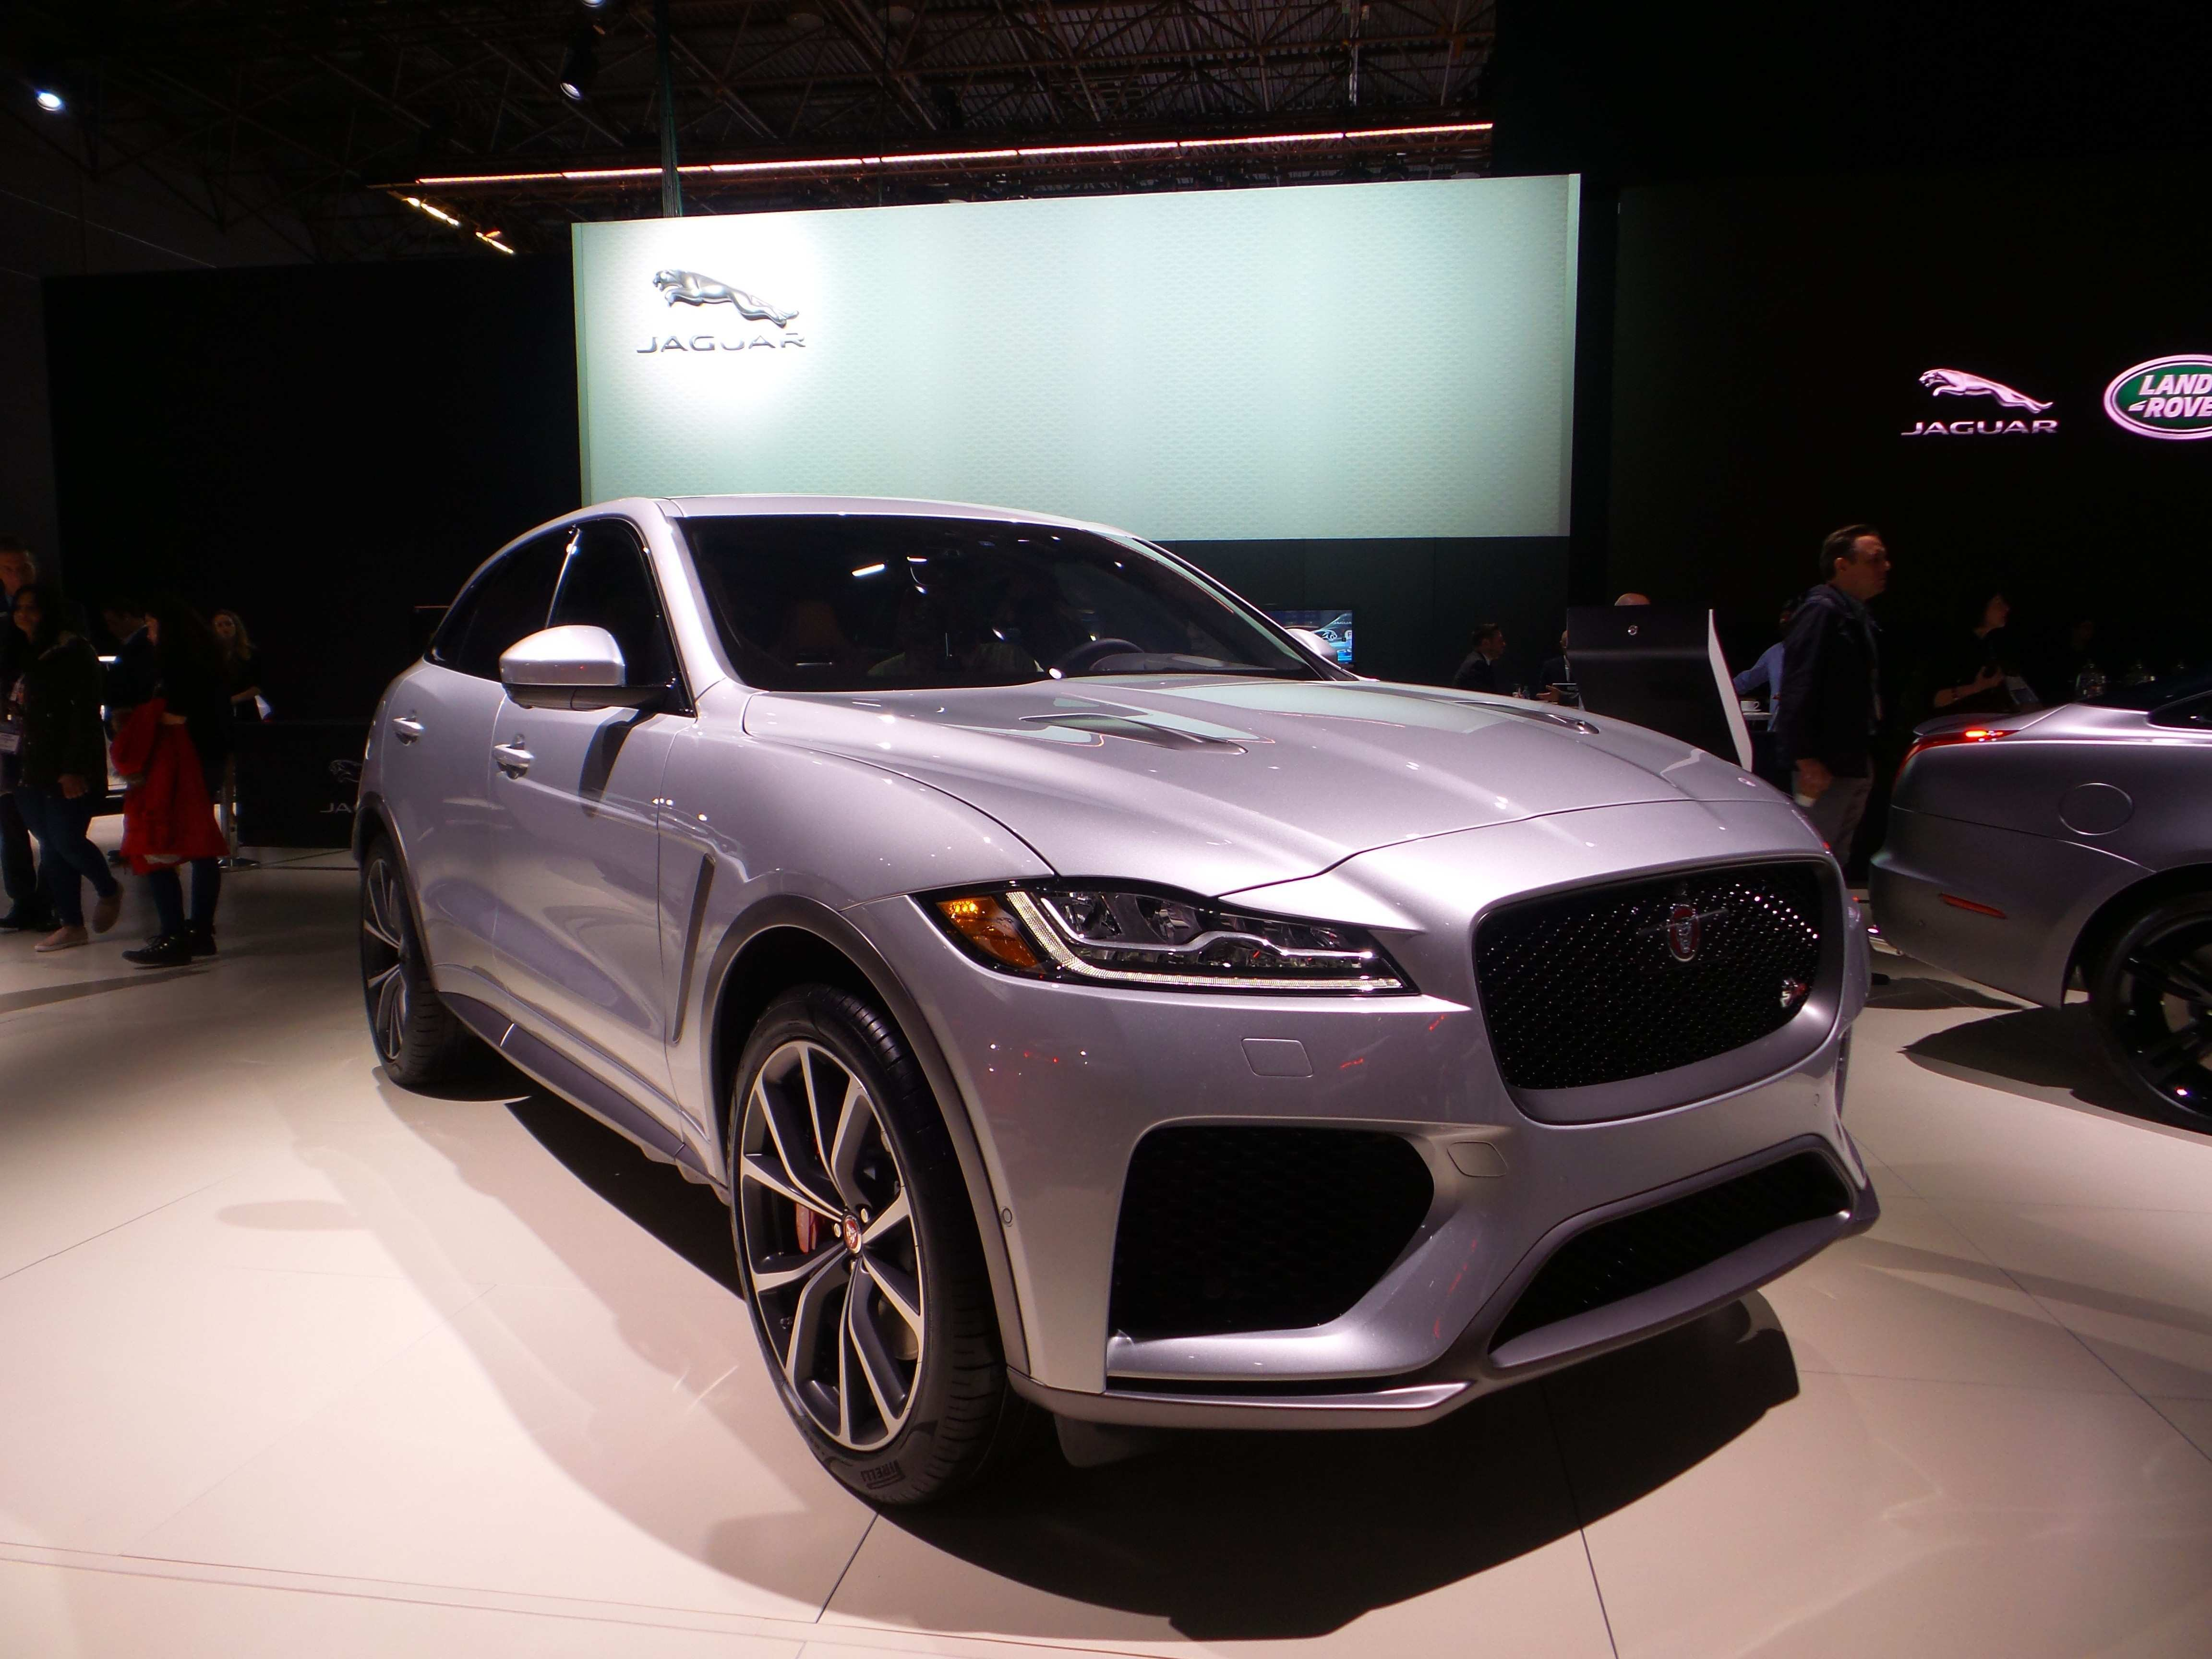 70 Concept of 2019 Jaguar Cost Specs Photos for 2019 Jaguar Cost Specs